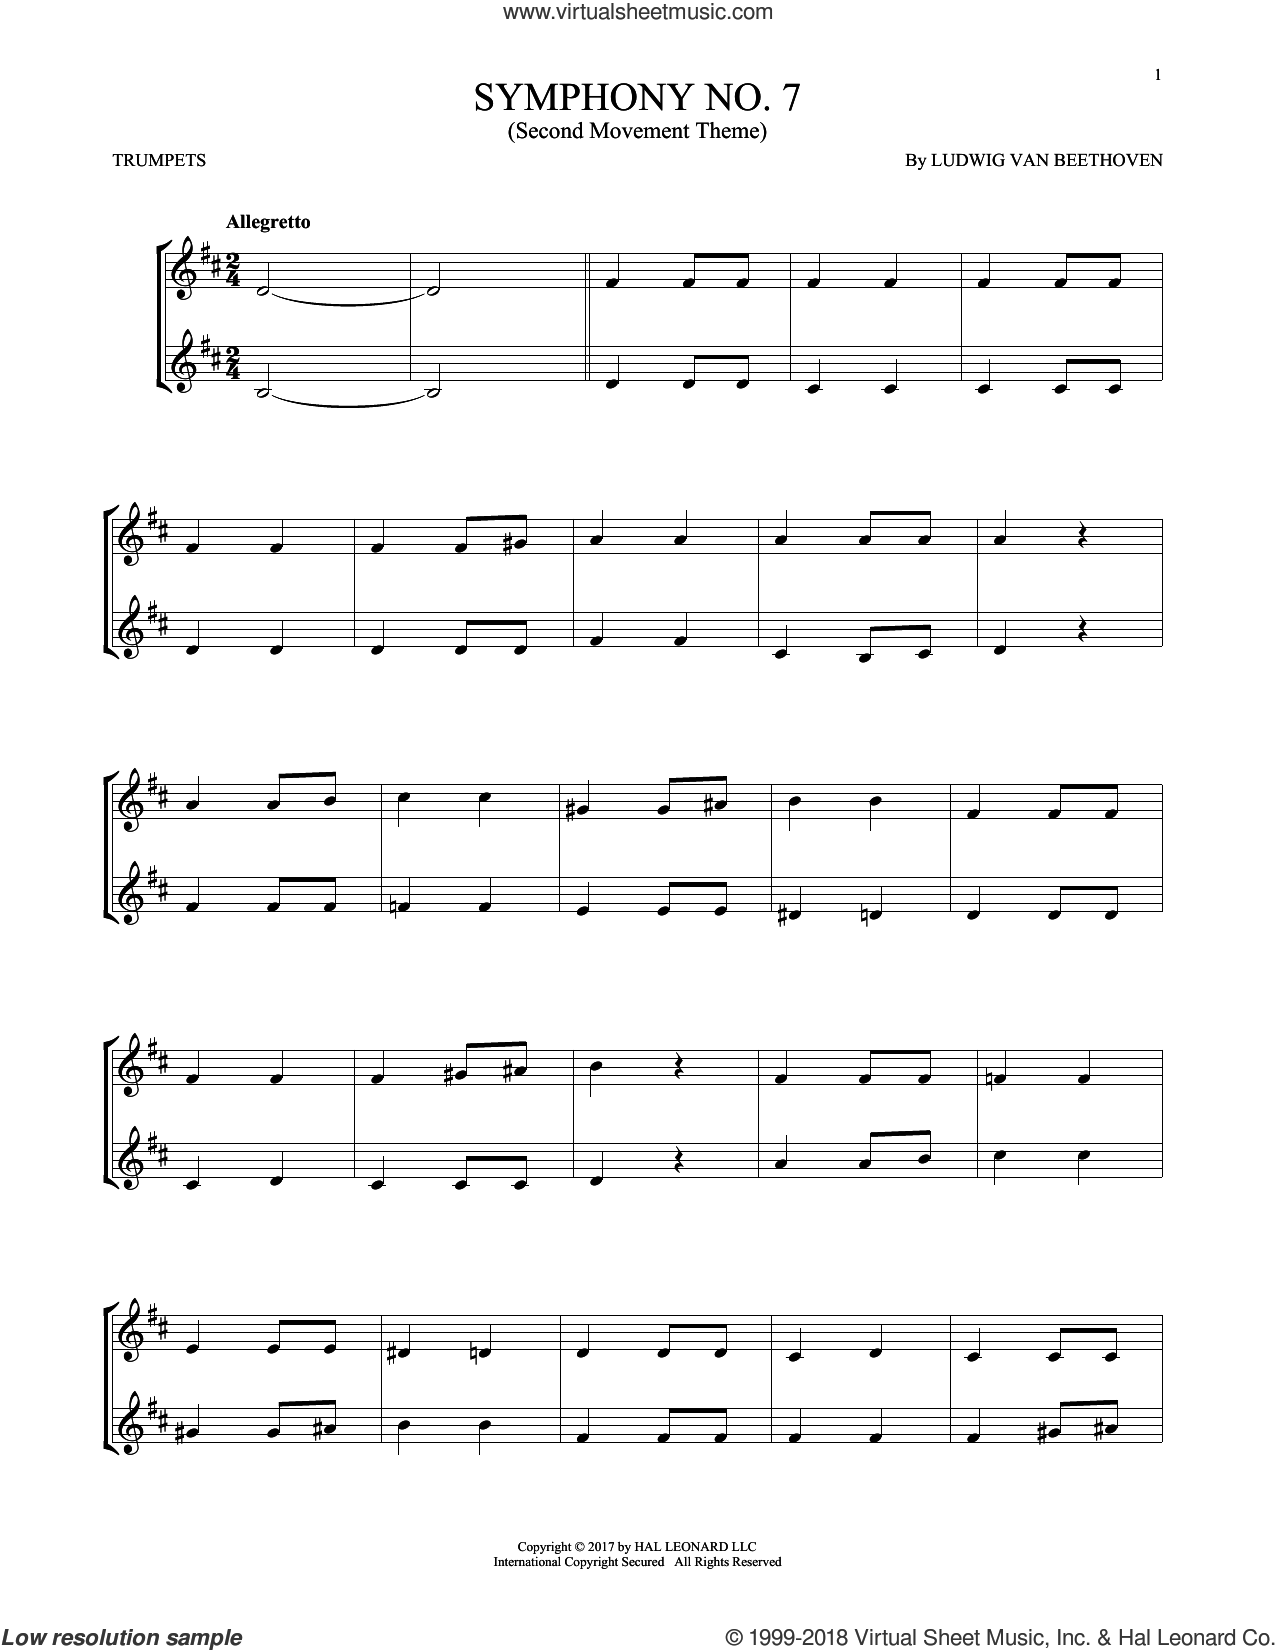 Symphony No. 7 In A Major, Second Movement (Allegretto) sheet music for two trumpets (duet, duets) by Ludwig van Beethoven, classical score, intermediate skill level